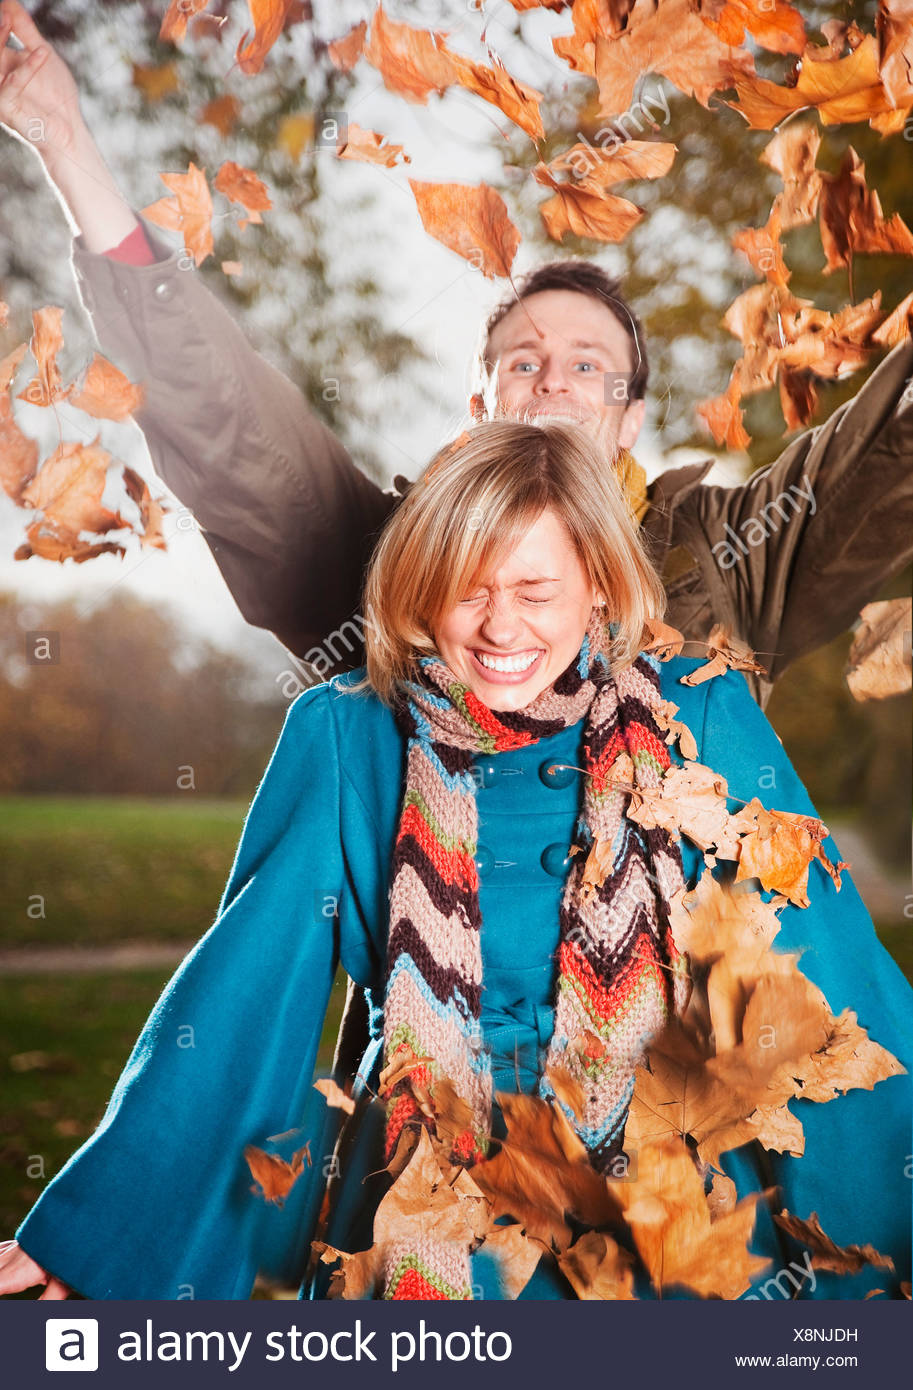 Couple playing with autumn leaves - Stock Image